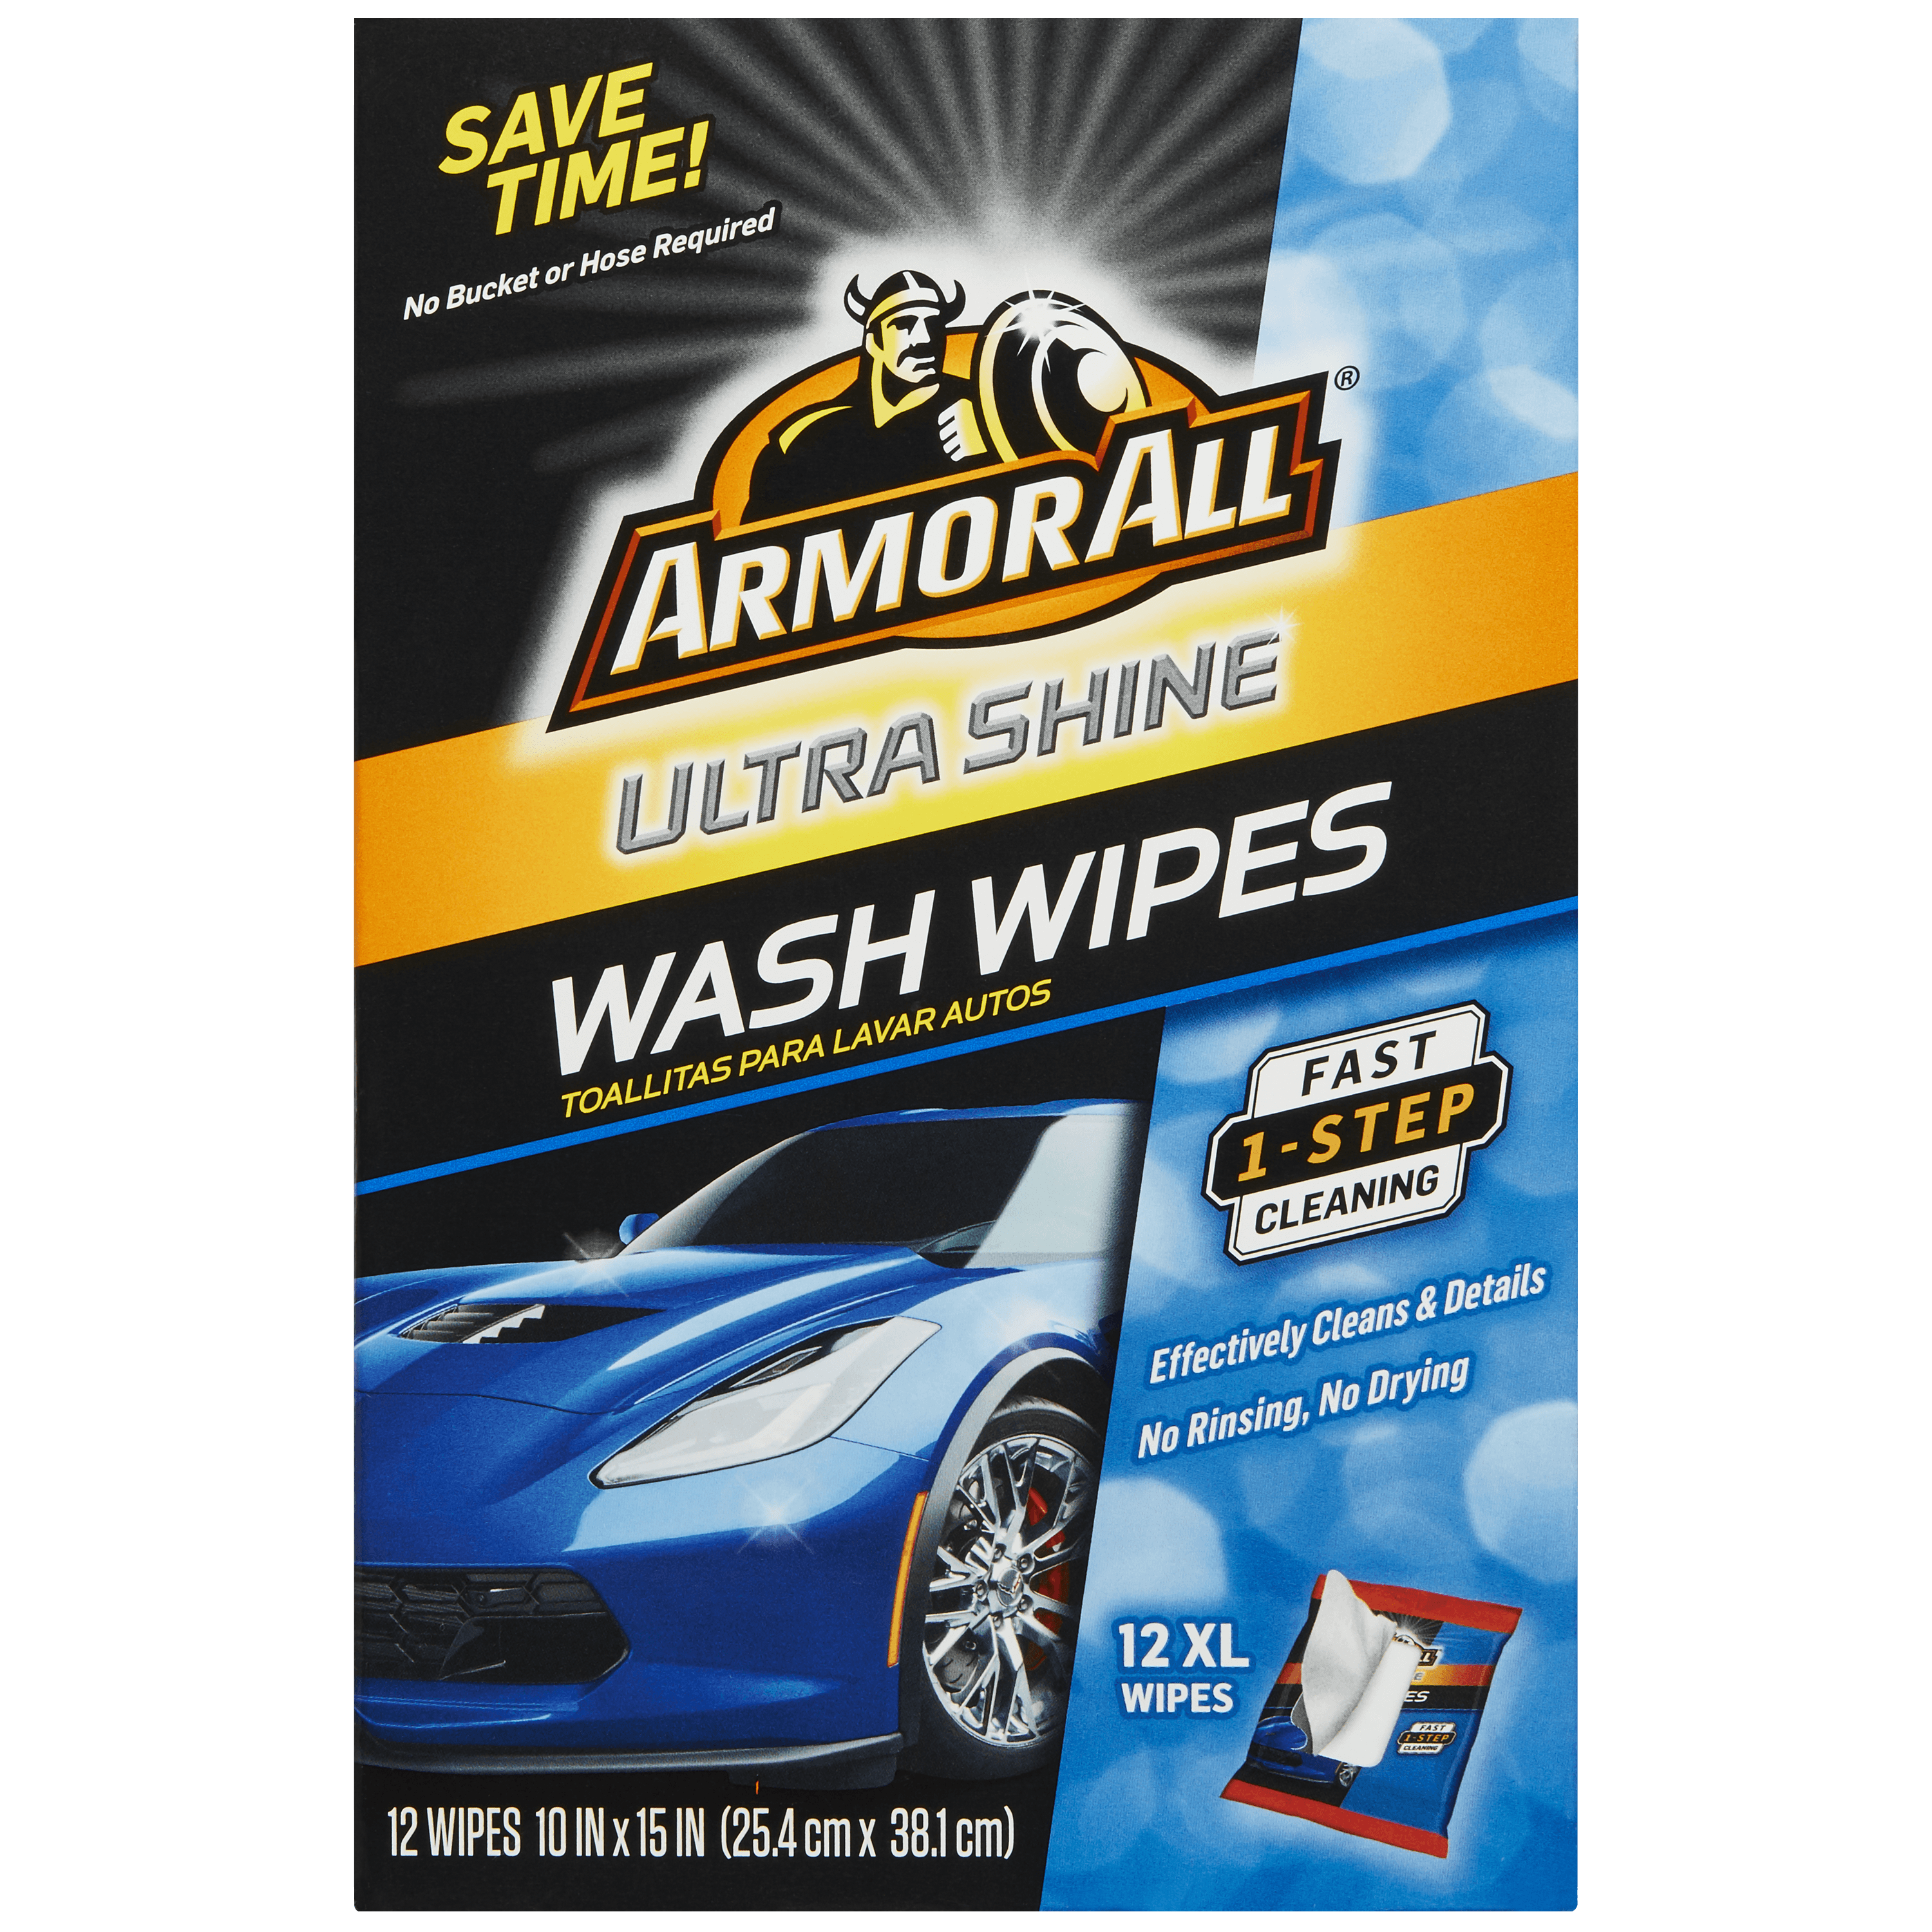 Armor All Ultra Shine Wash Wipes, 12 count, Car Wash Wipes